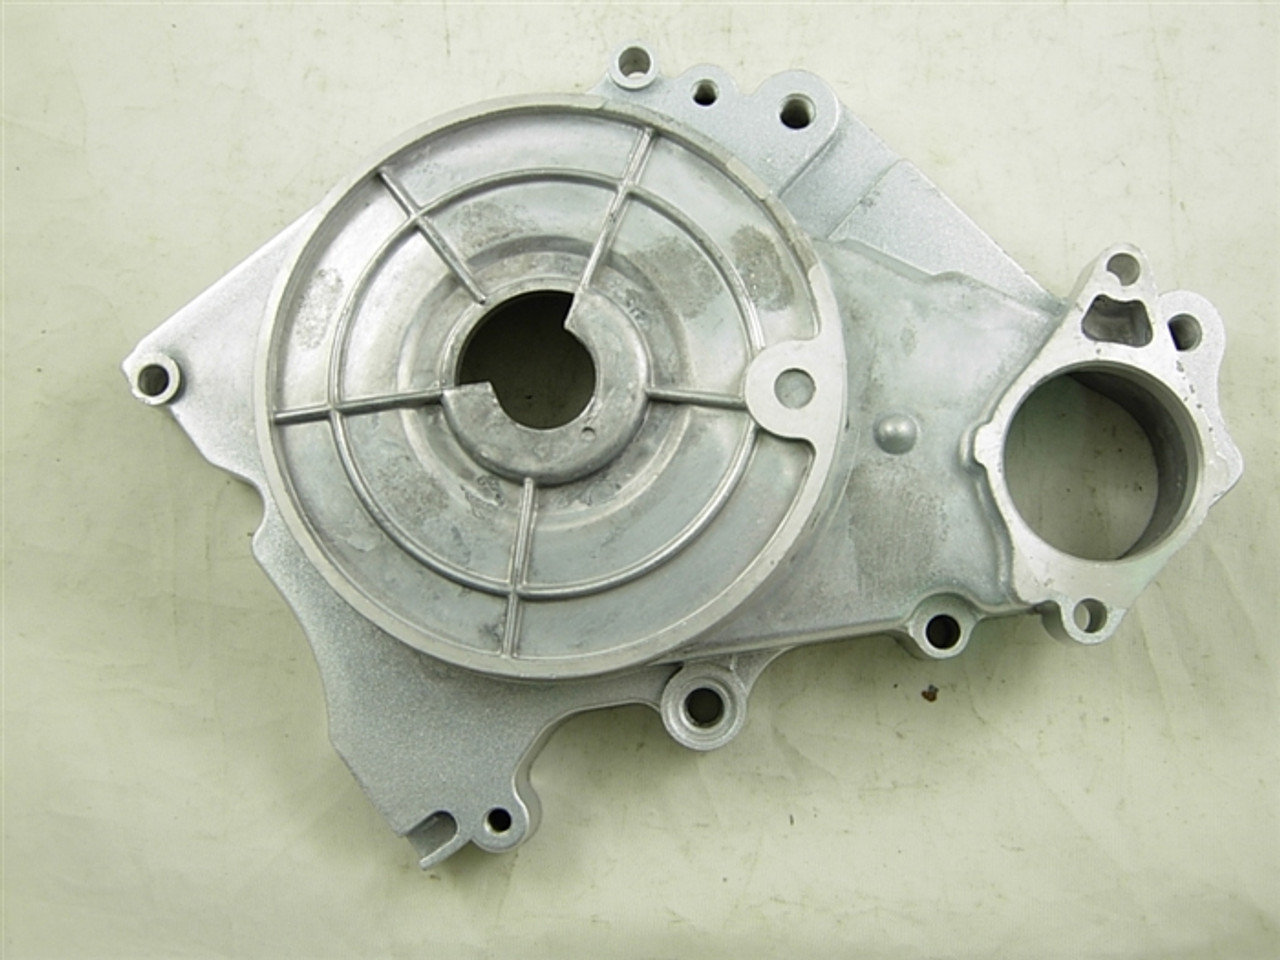 COVER/ENGINE COVER/STARTER HOLDER 10572-A32-14